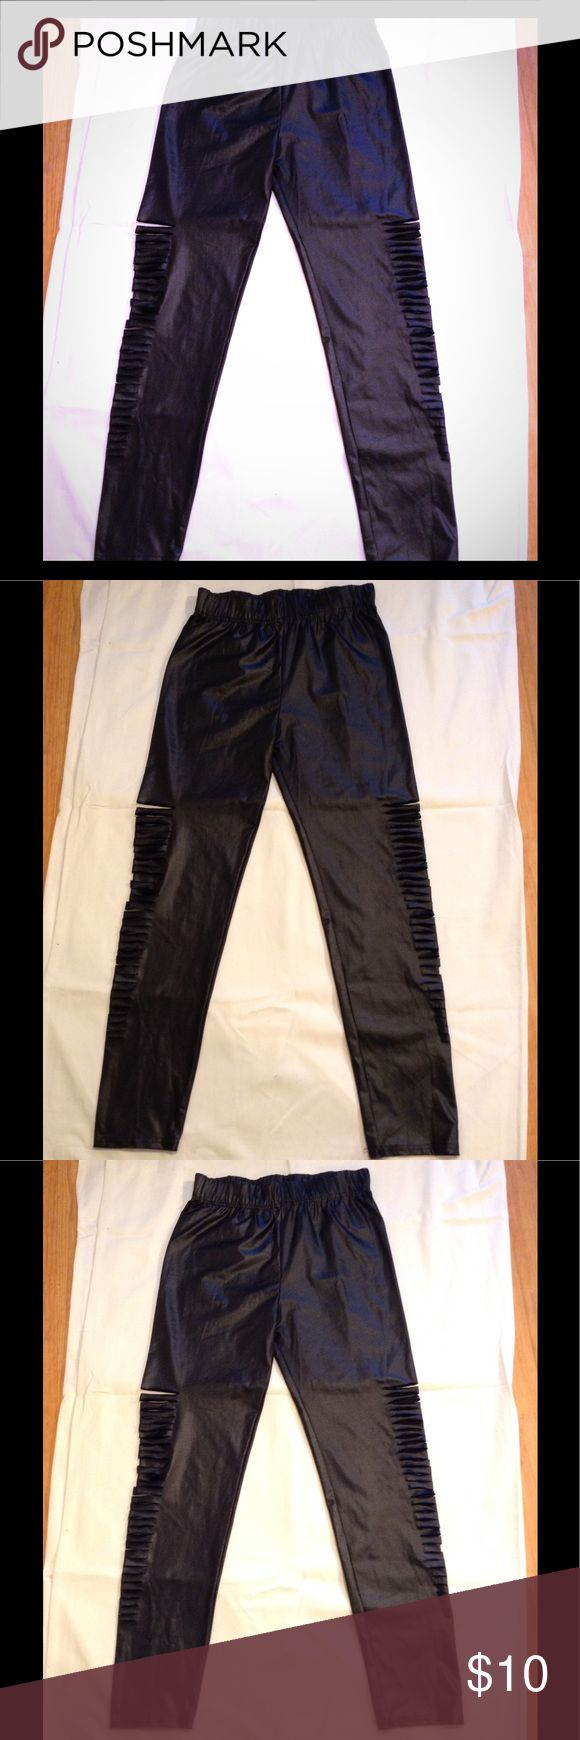 Kardashian Kollection Slash Cut Out Black Leggings Kardashian Kollection stretchy leggings with cut out slashes on the side of the legs. Size L. Worn once. First two pictures are model pictures, the other pictures are of the actual leggings you'll be receiving. Kardashian Kollection Pants Leggings